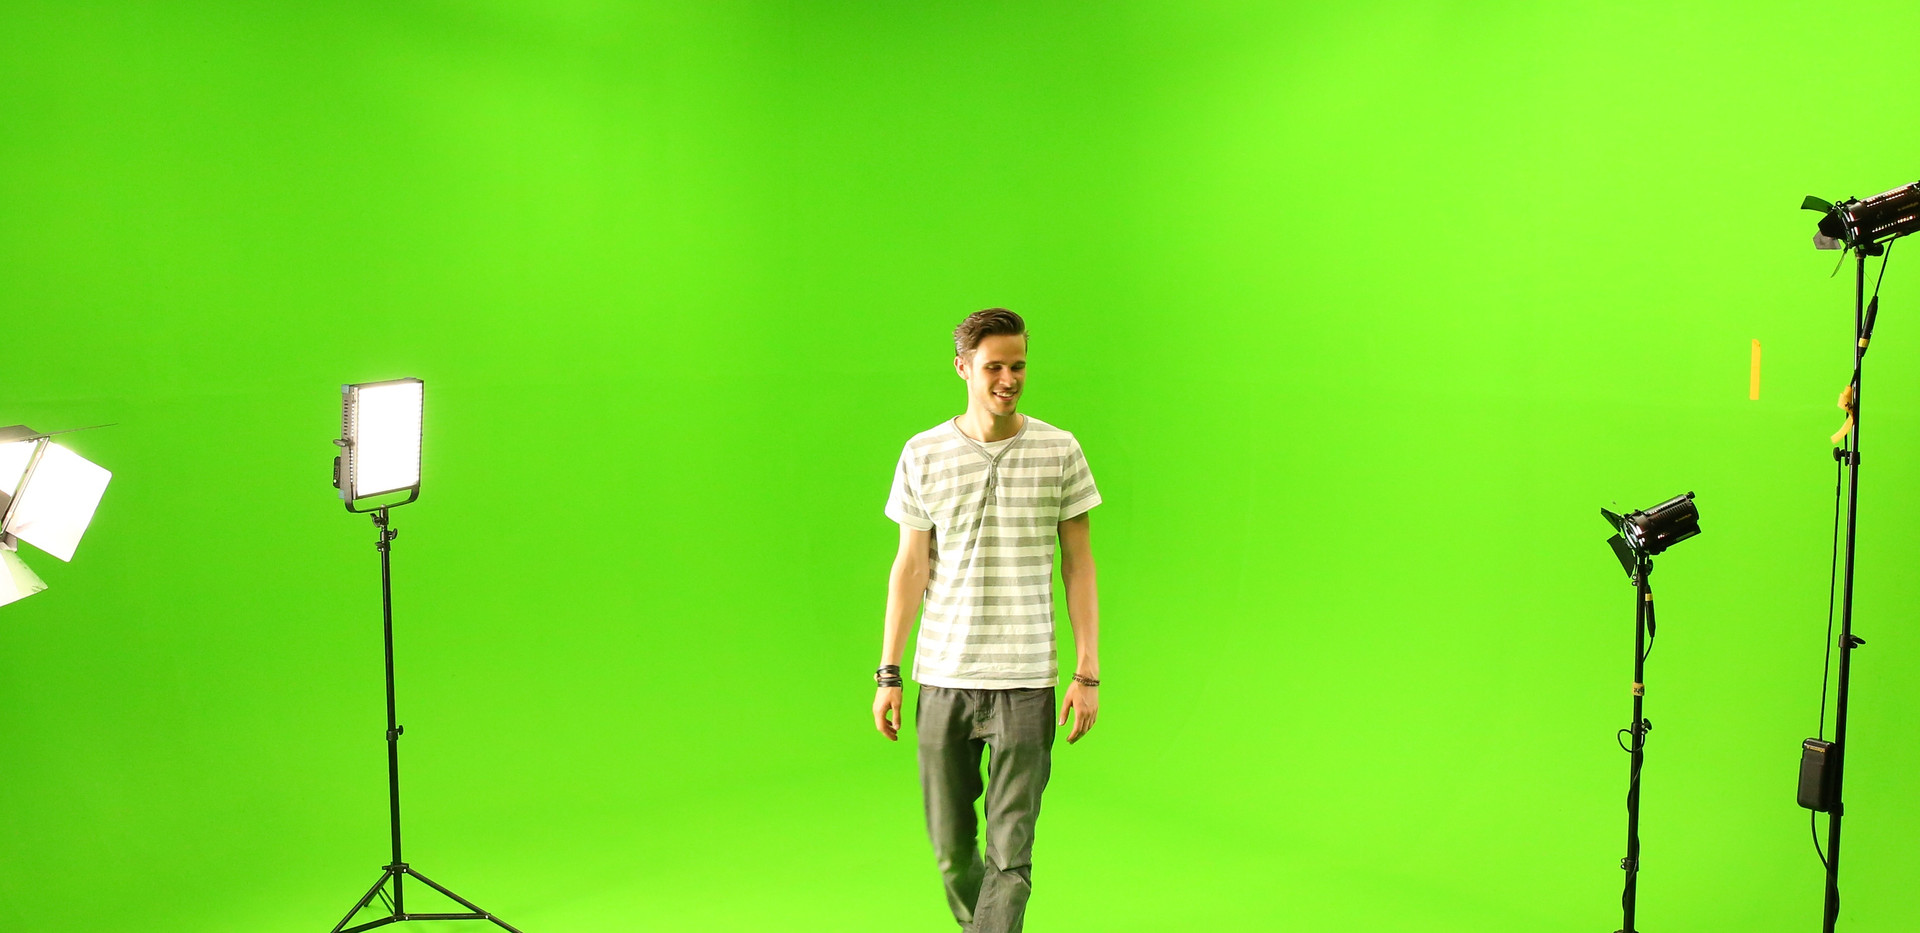 jimmy lee wolff greenscreenstudio uk cameraman